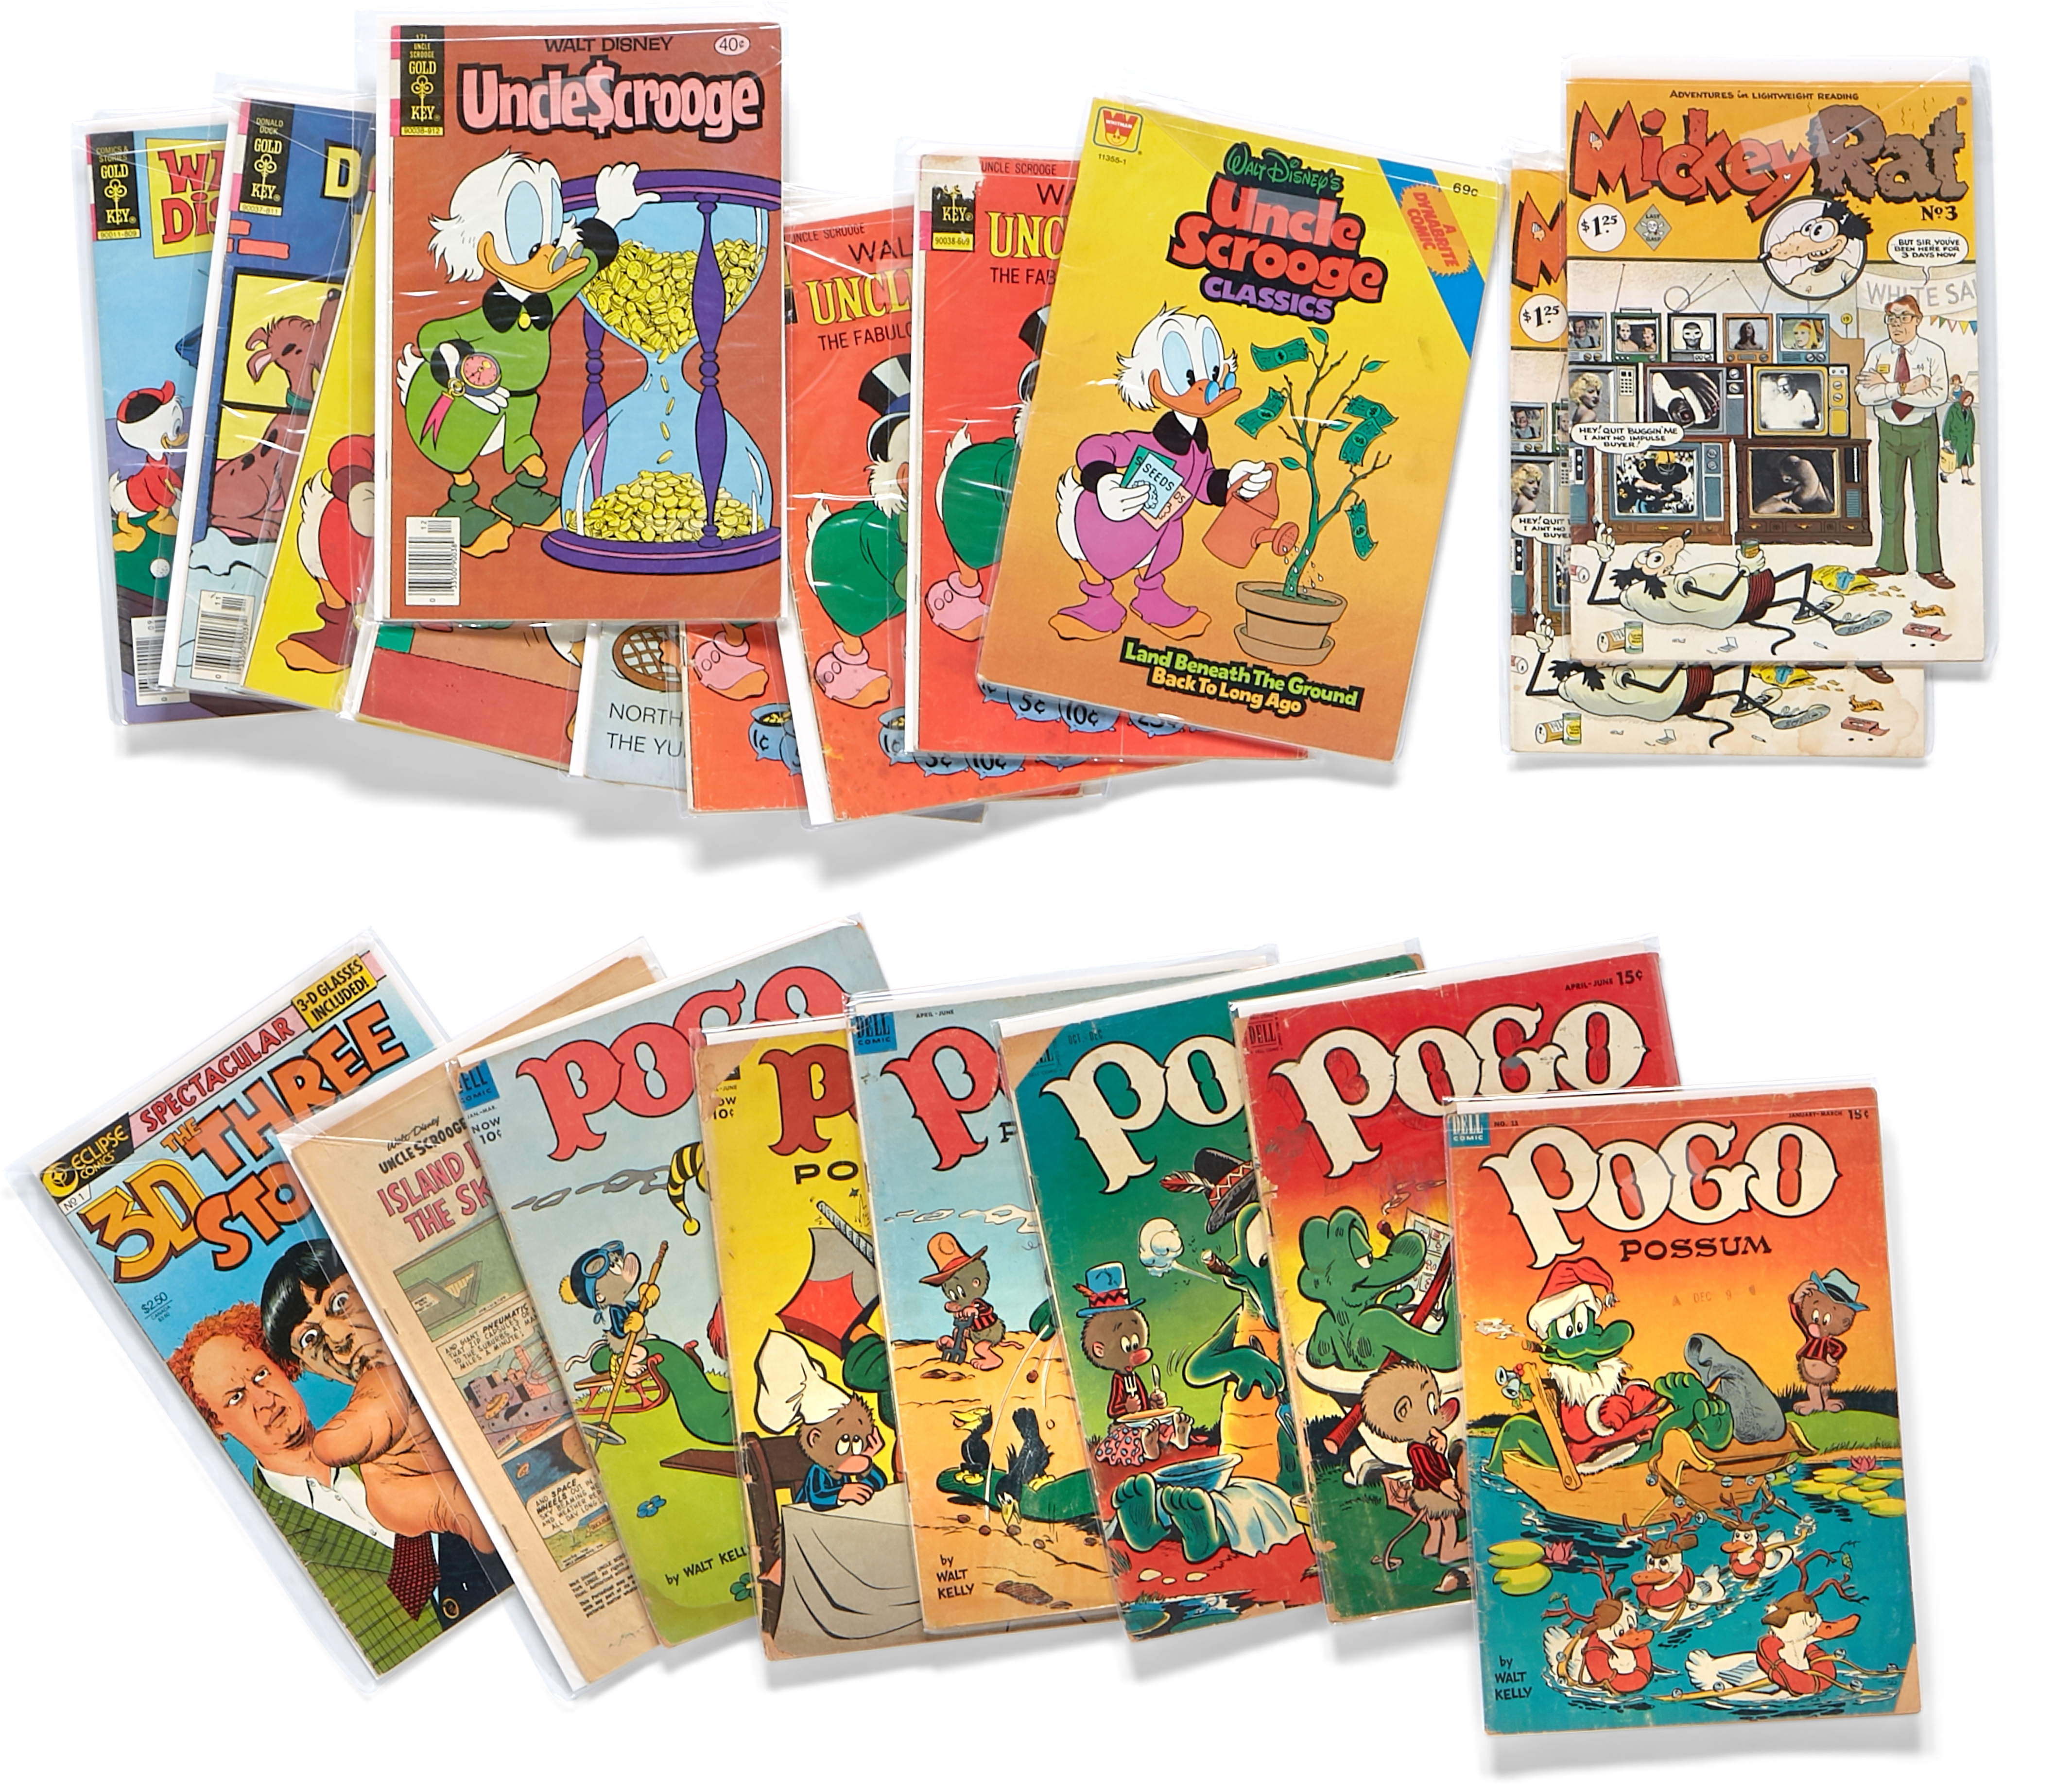 Lot 311 - A JERRY GARCIA GROUP OF 22 ASSORTED COMICS 1950s-1980s